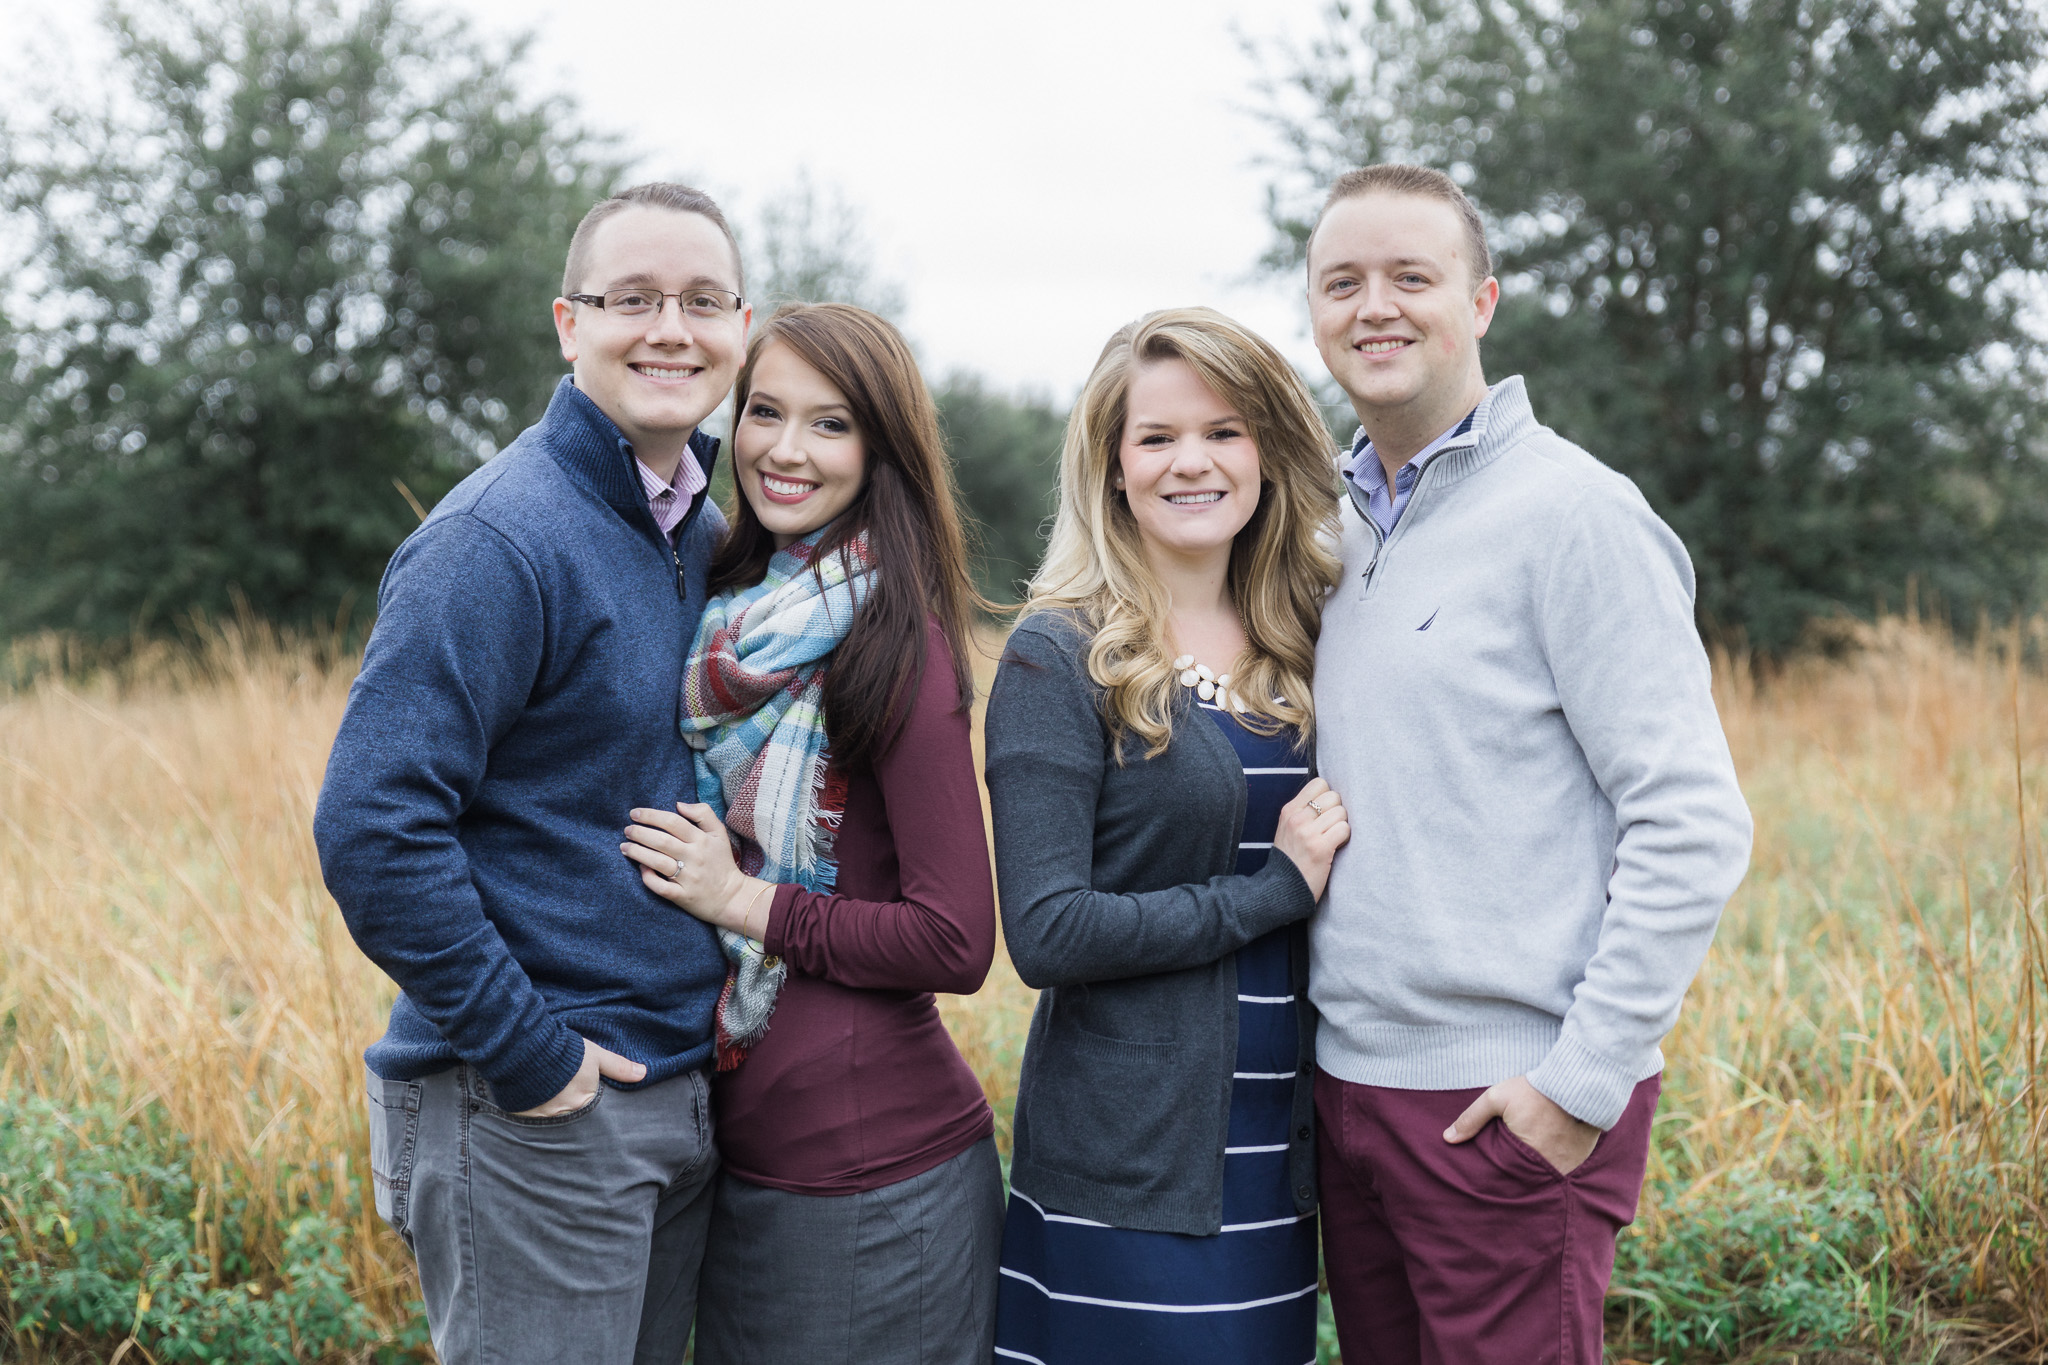 jacksonville family photographer-0004.jpg